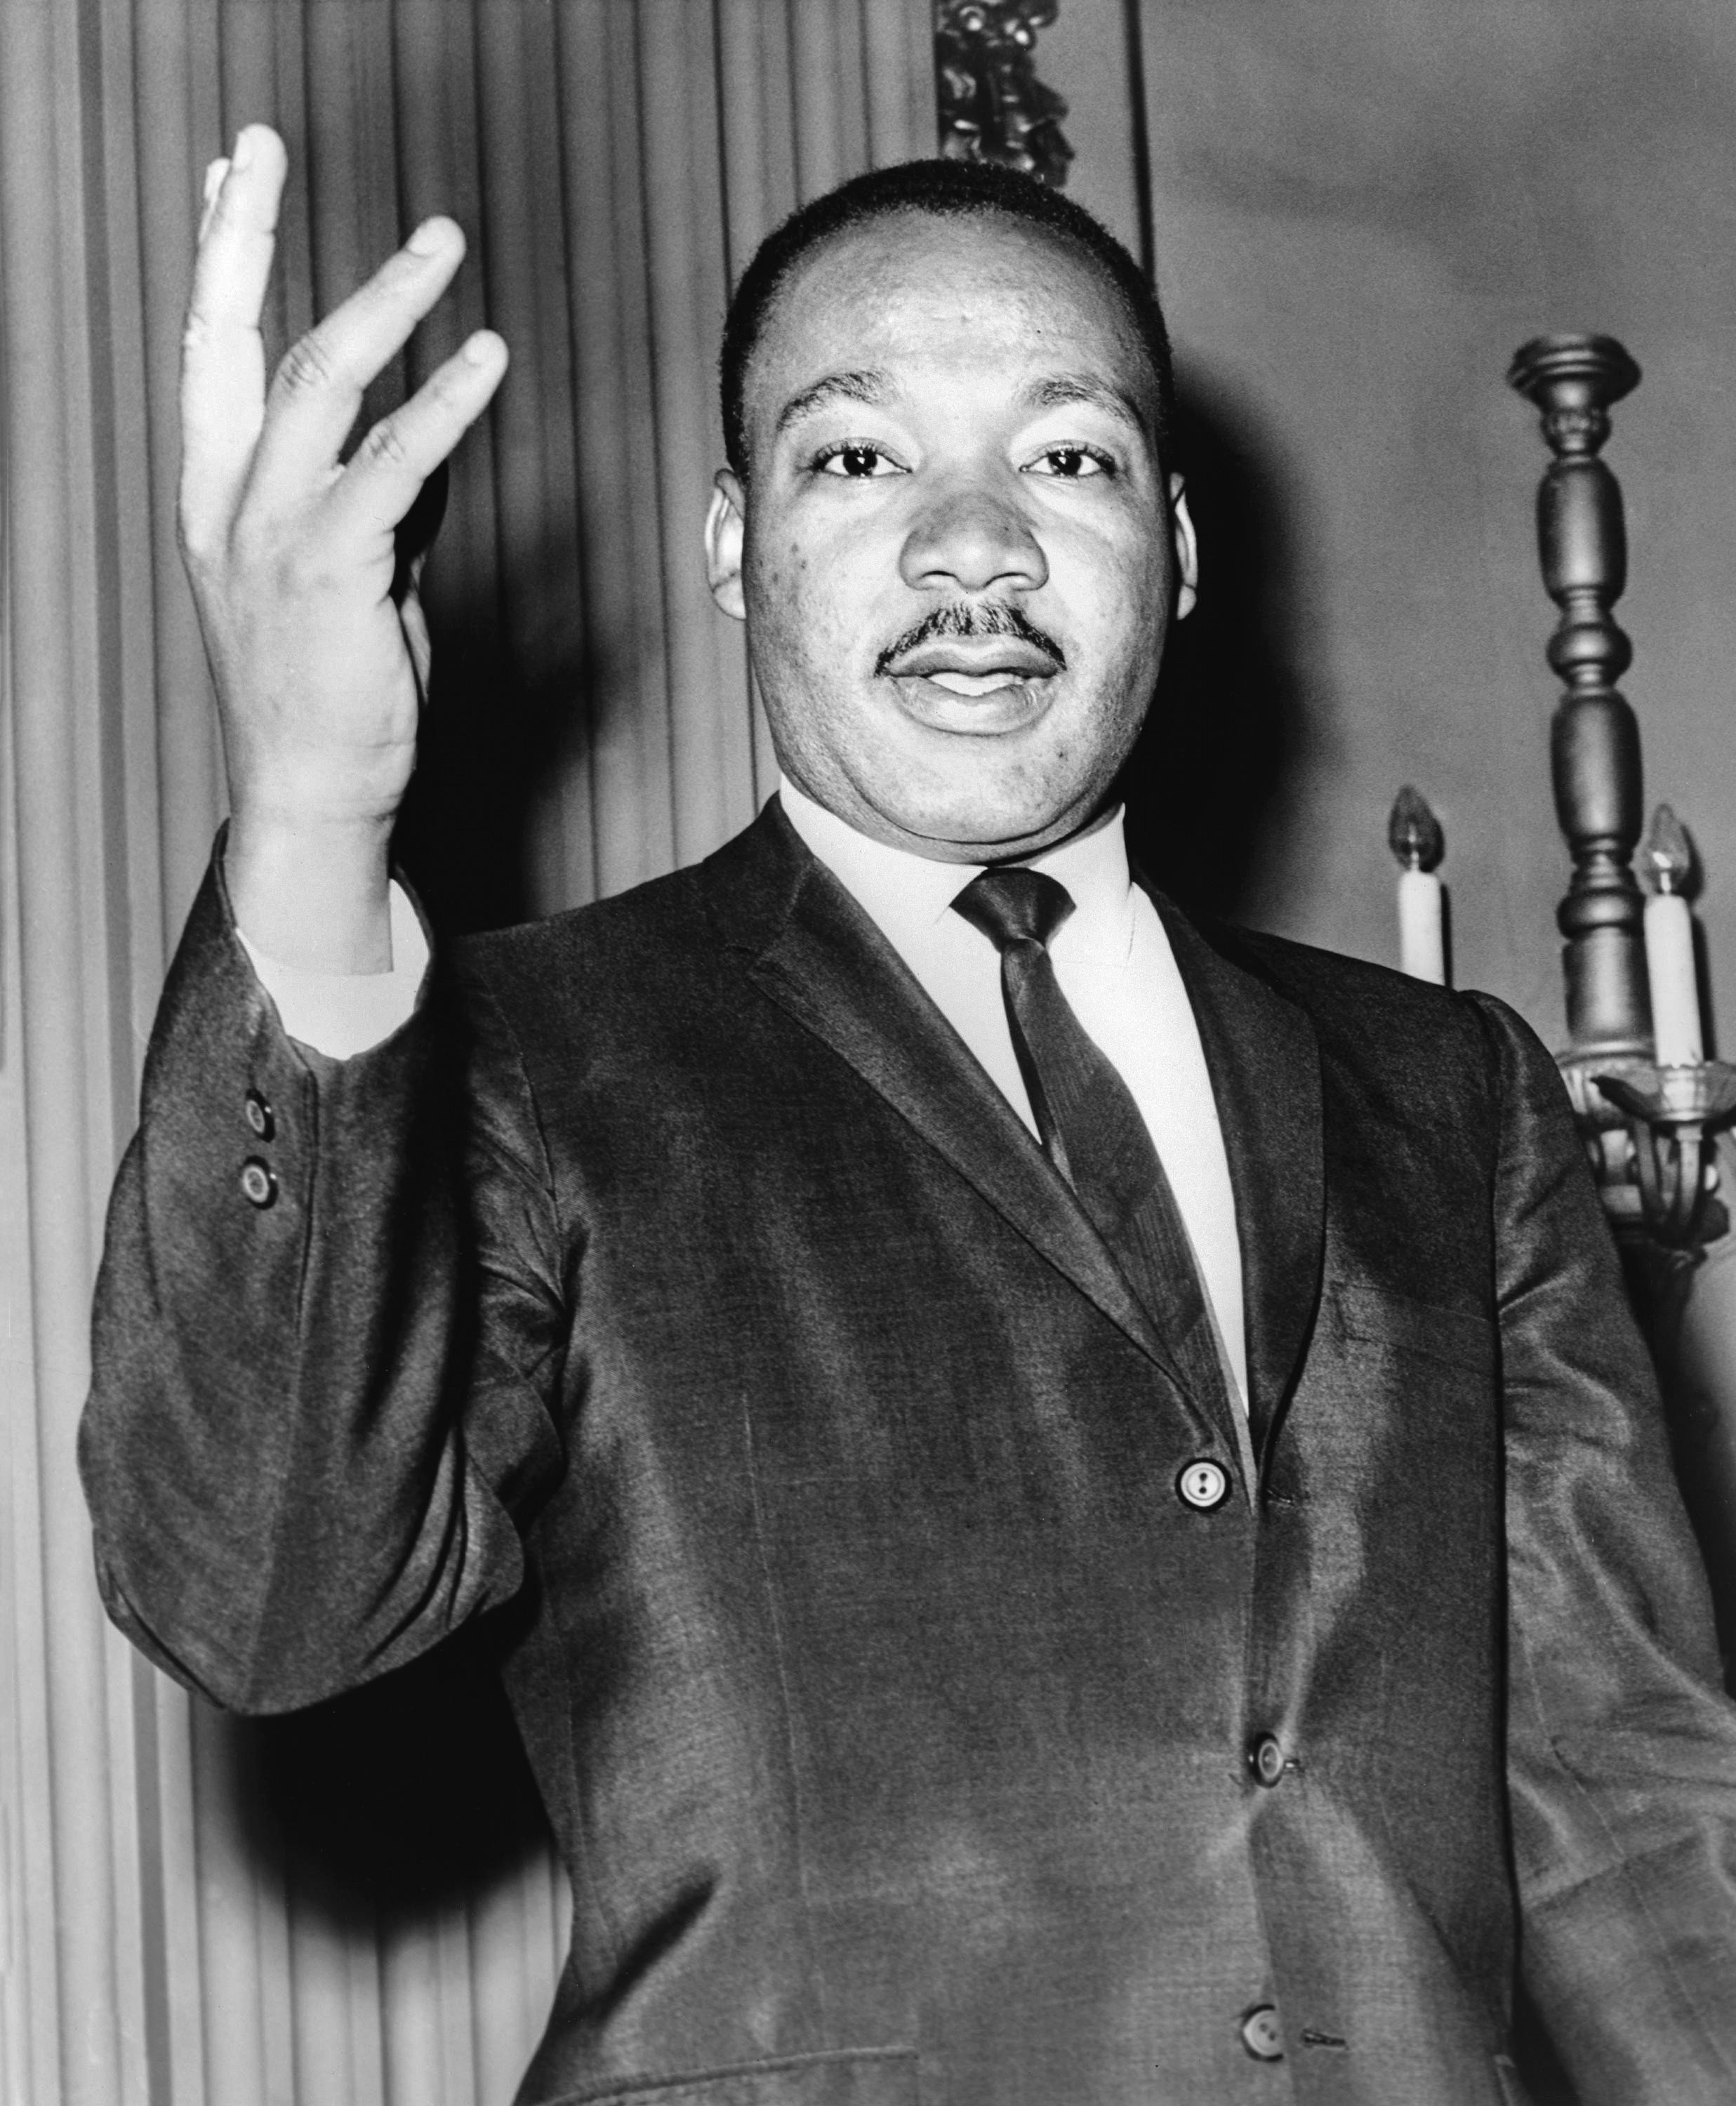 Assassination of Martin Luther King Jr. - Wikipedia